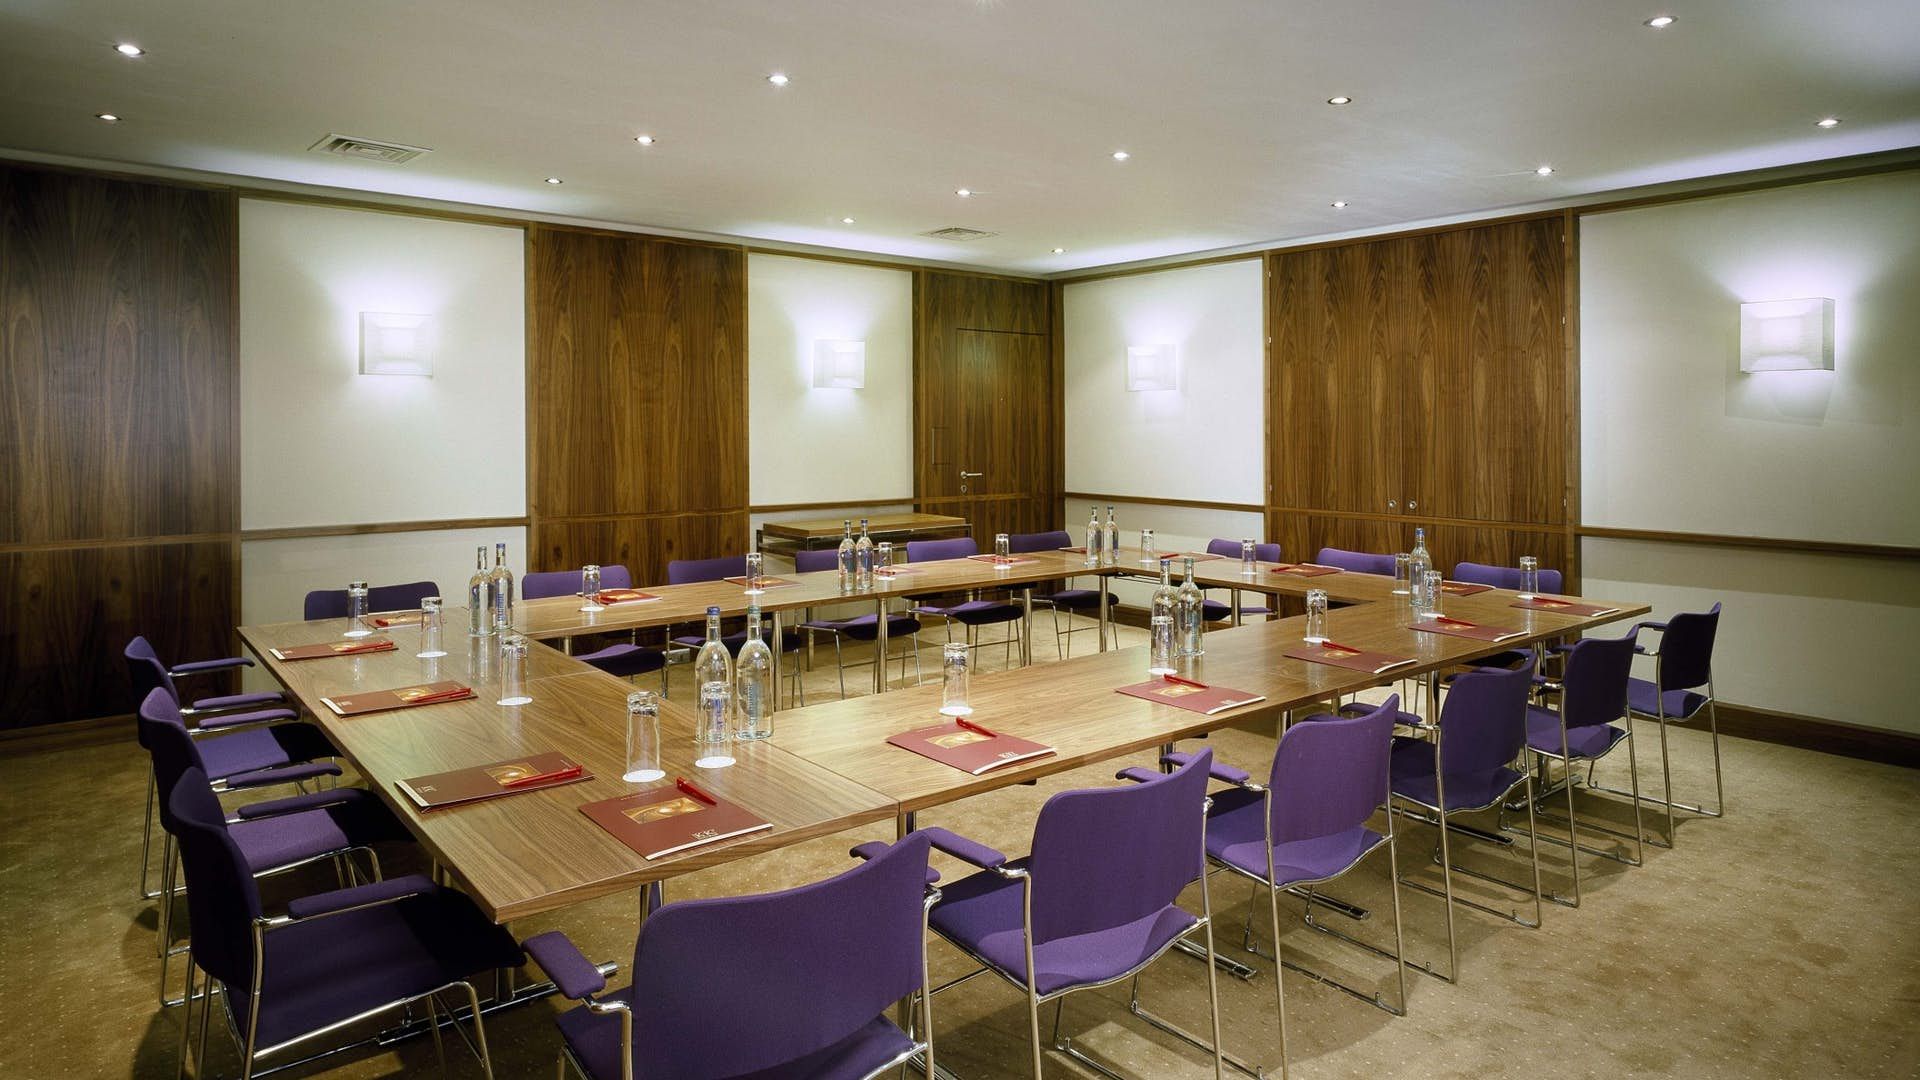 Conference room nevern business k k hotel george for Best private dining rooms west end london